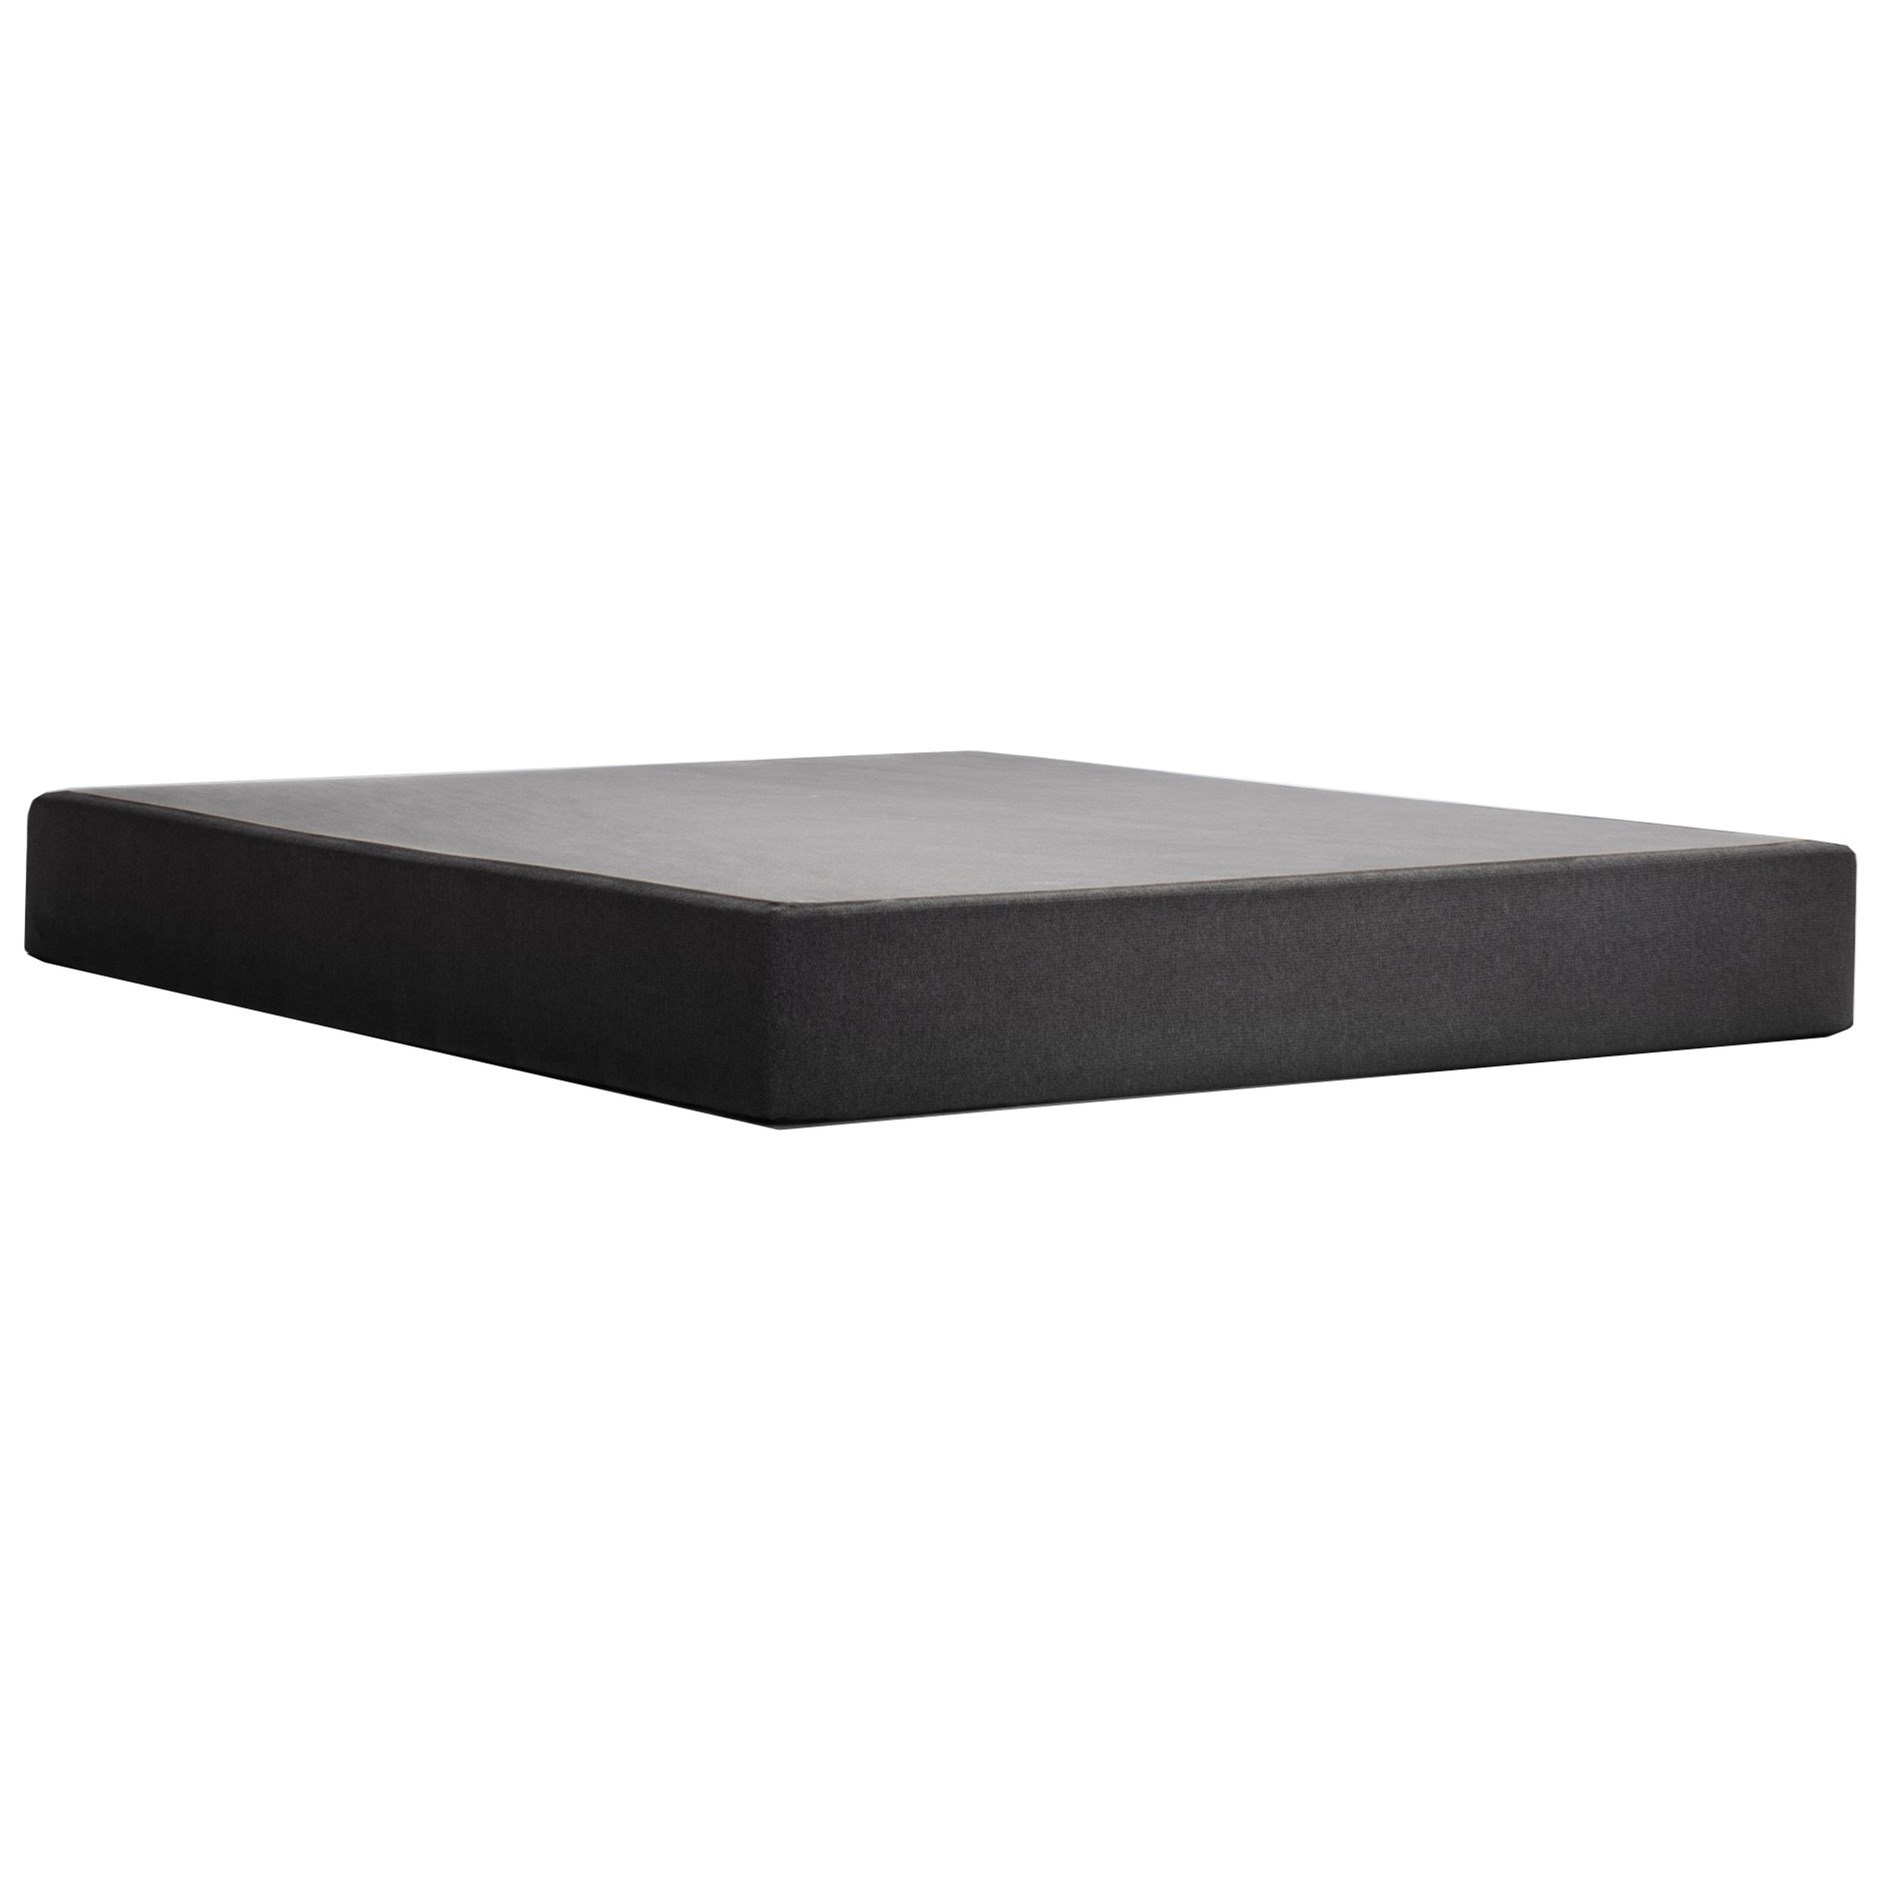 "2018 Tempur Foundations Twin XL Standard Base 9"" Height by Tempur-Pedic® at Furniture and ApplianceMart"